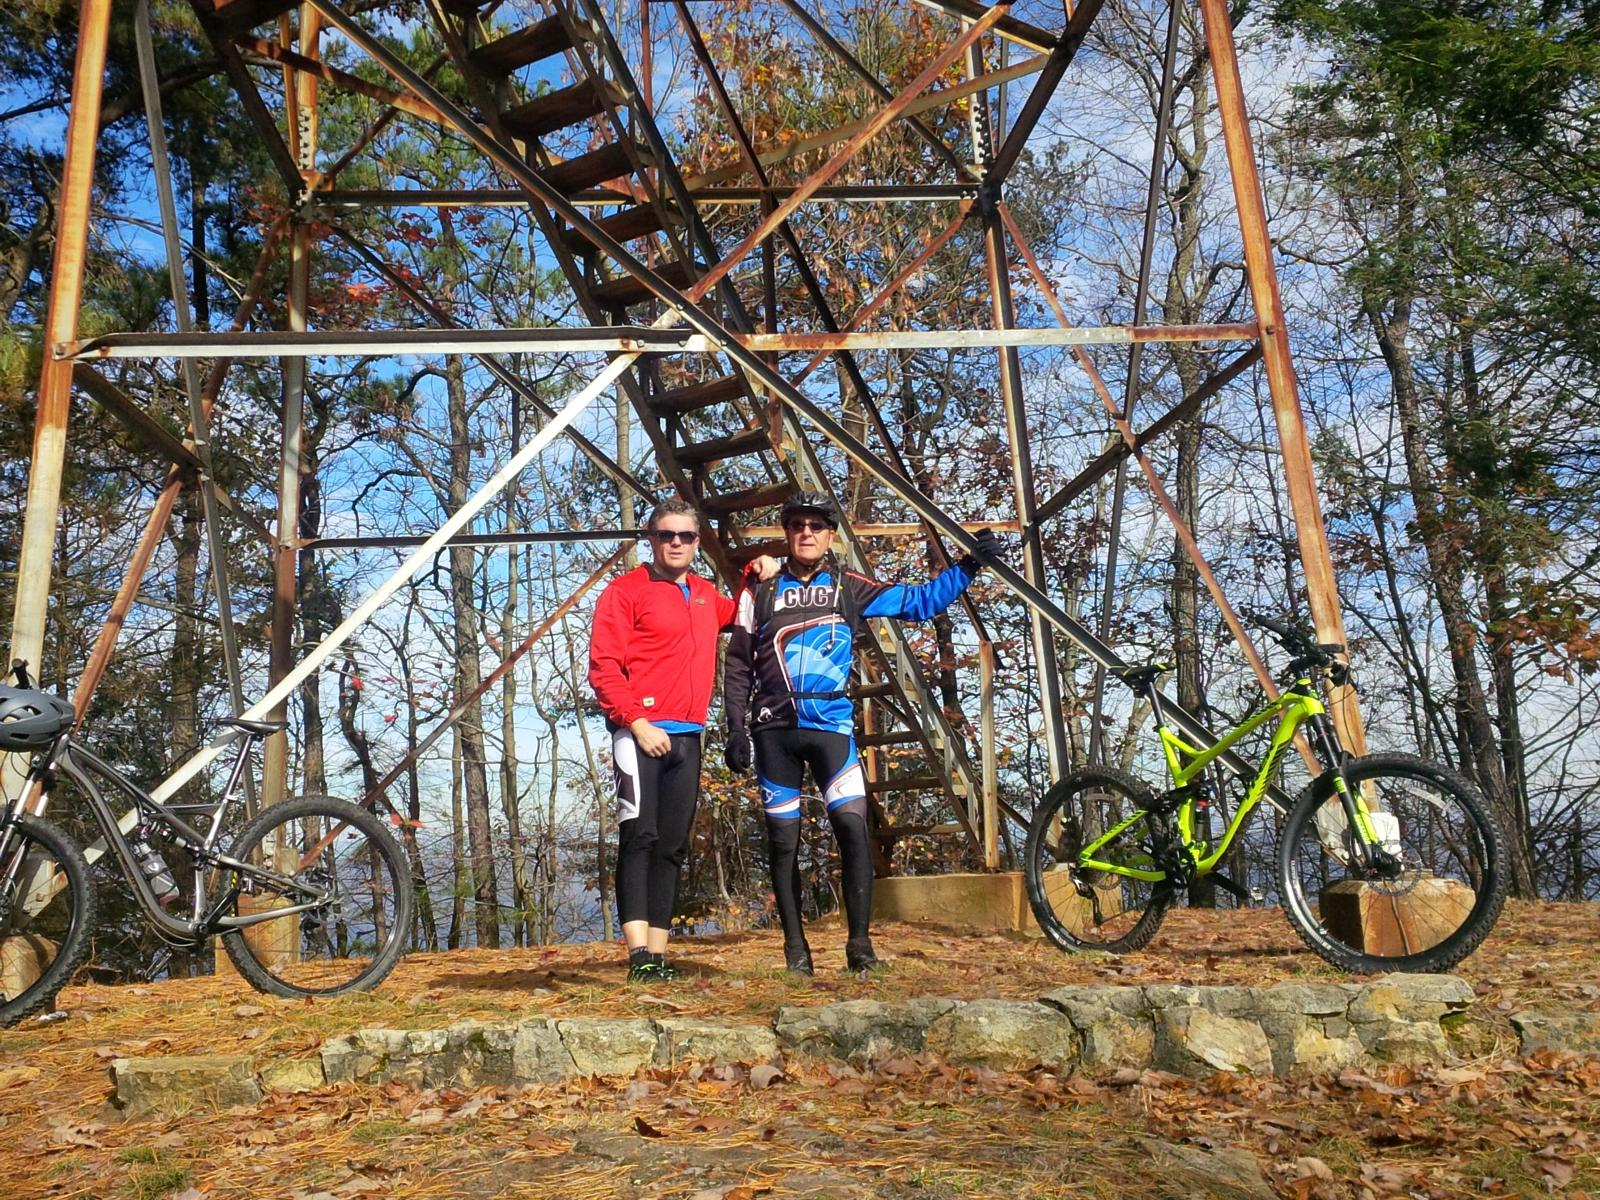 argazkia kingsport-bays mountain park trail-kingsport tennessee 11-11-15